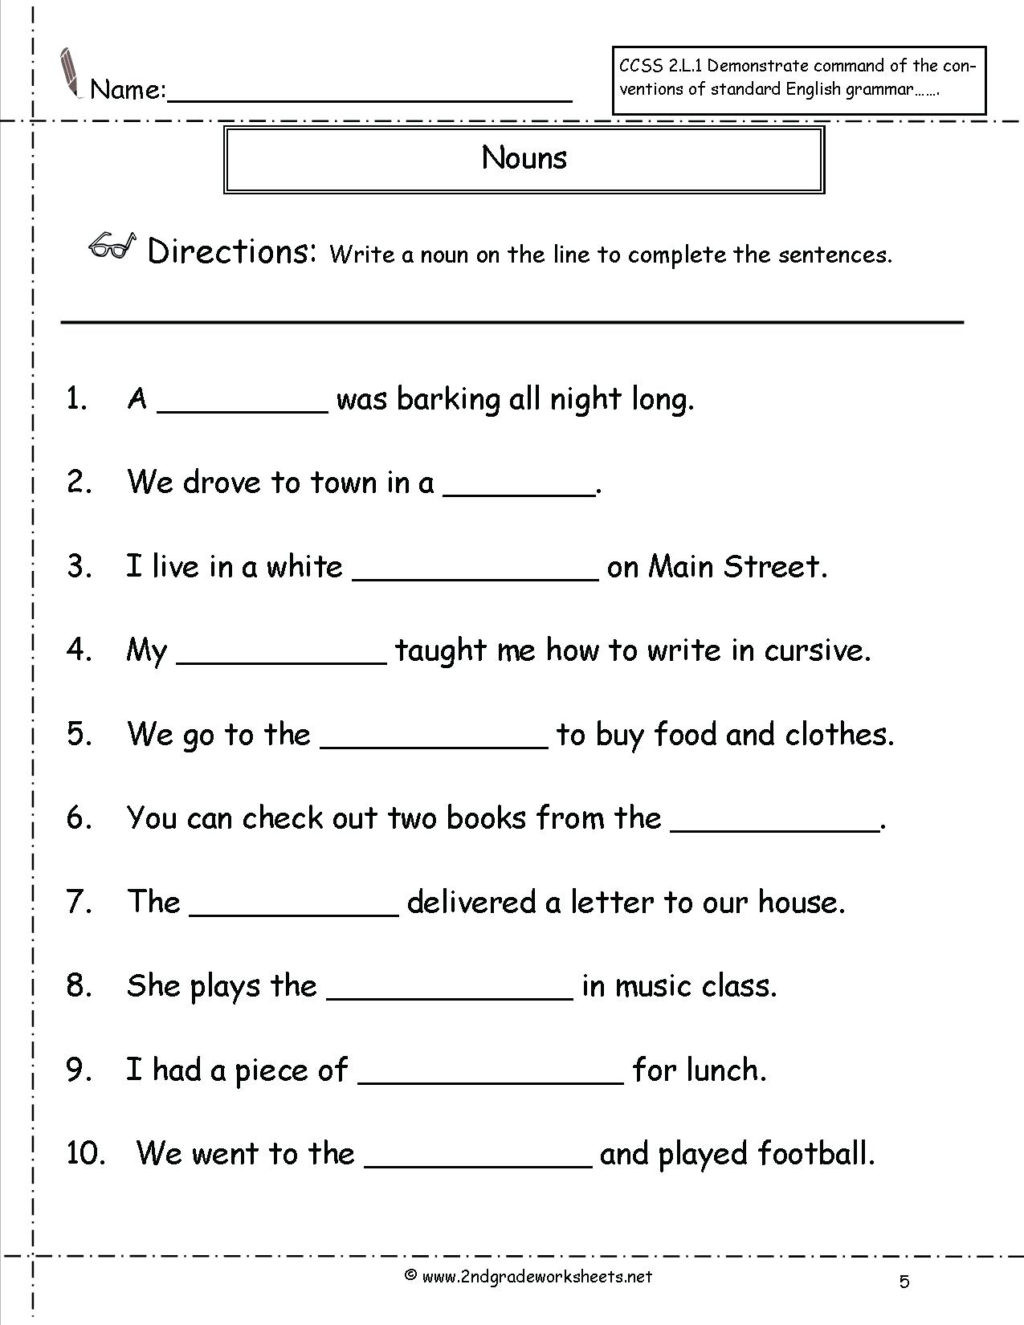 Possessive Pronouns Worksheet 3rd Grade Worksheet Free Printable Second Grade Reading